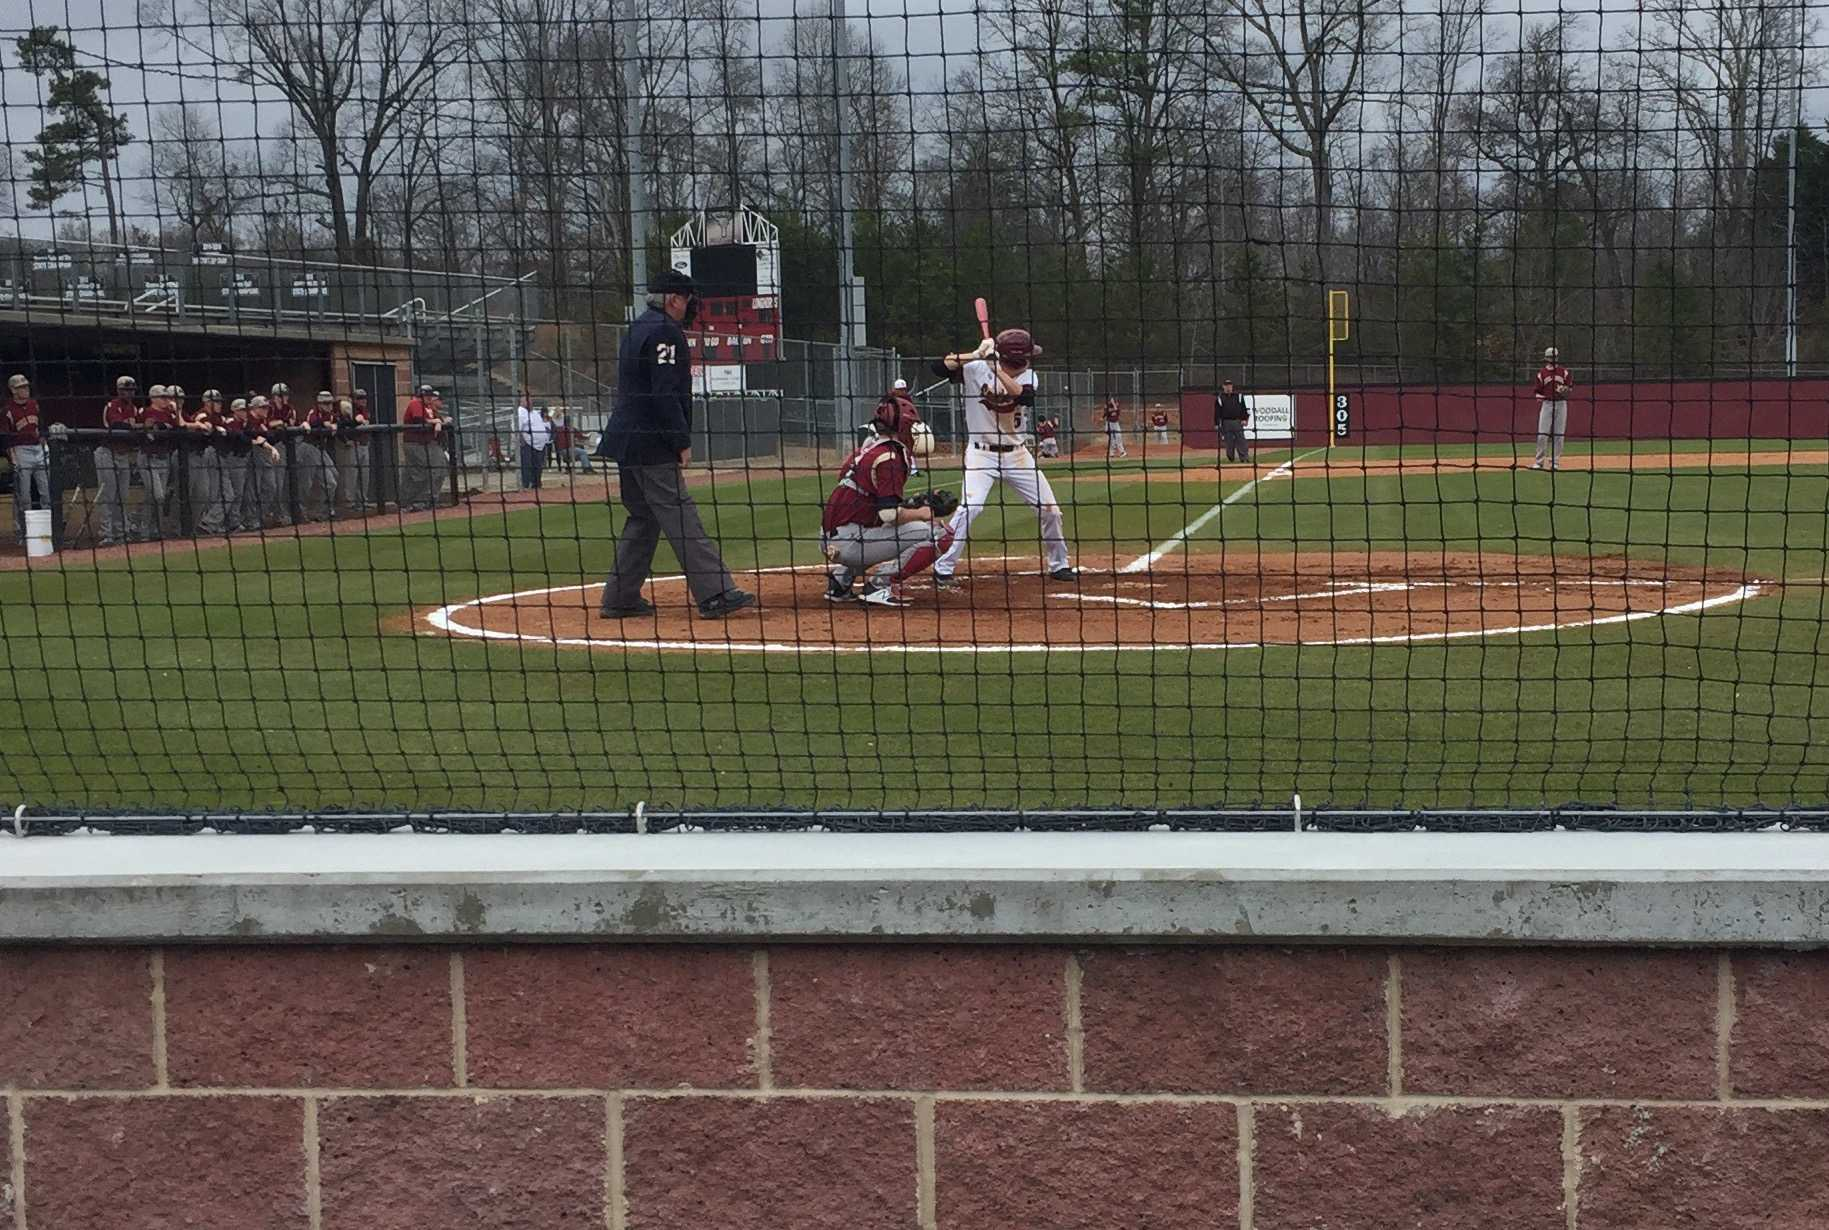 Senior baseball player Josh McAllister hits during a recent home game (Photo taken by Colin Masterson)